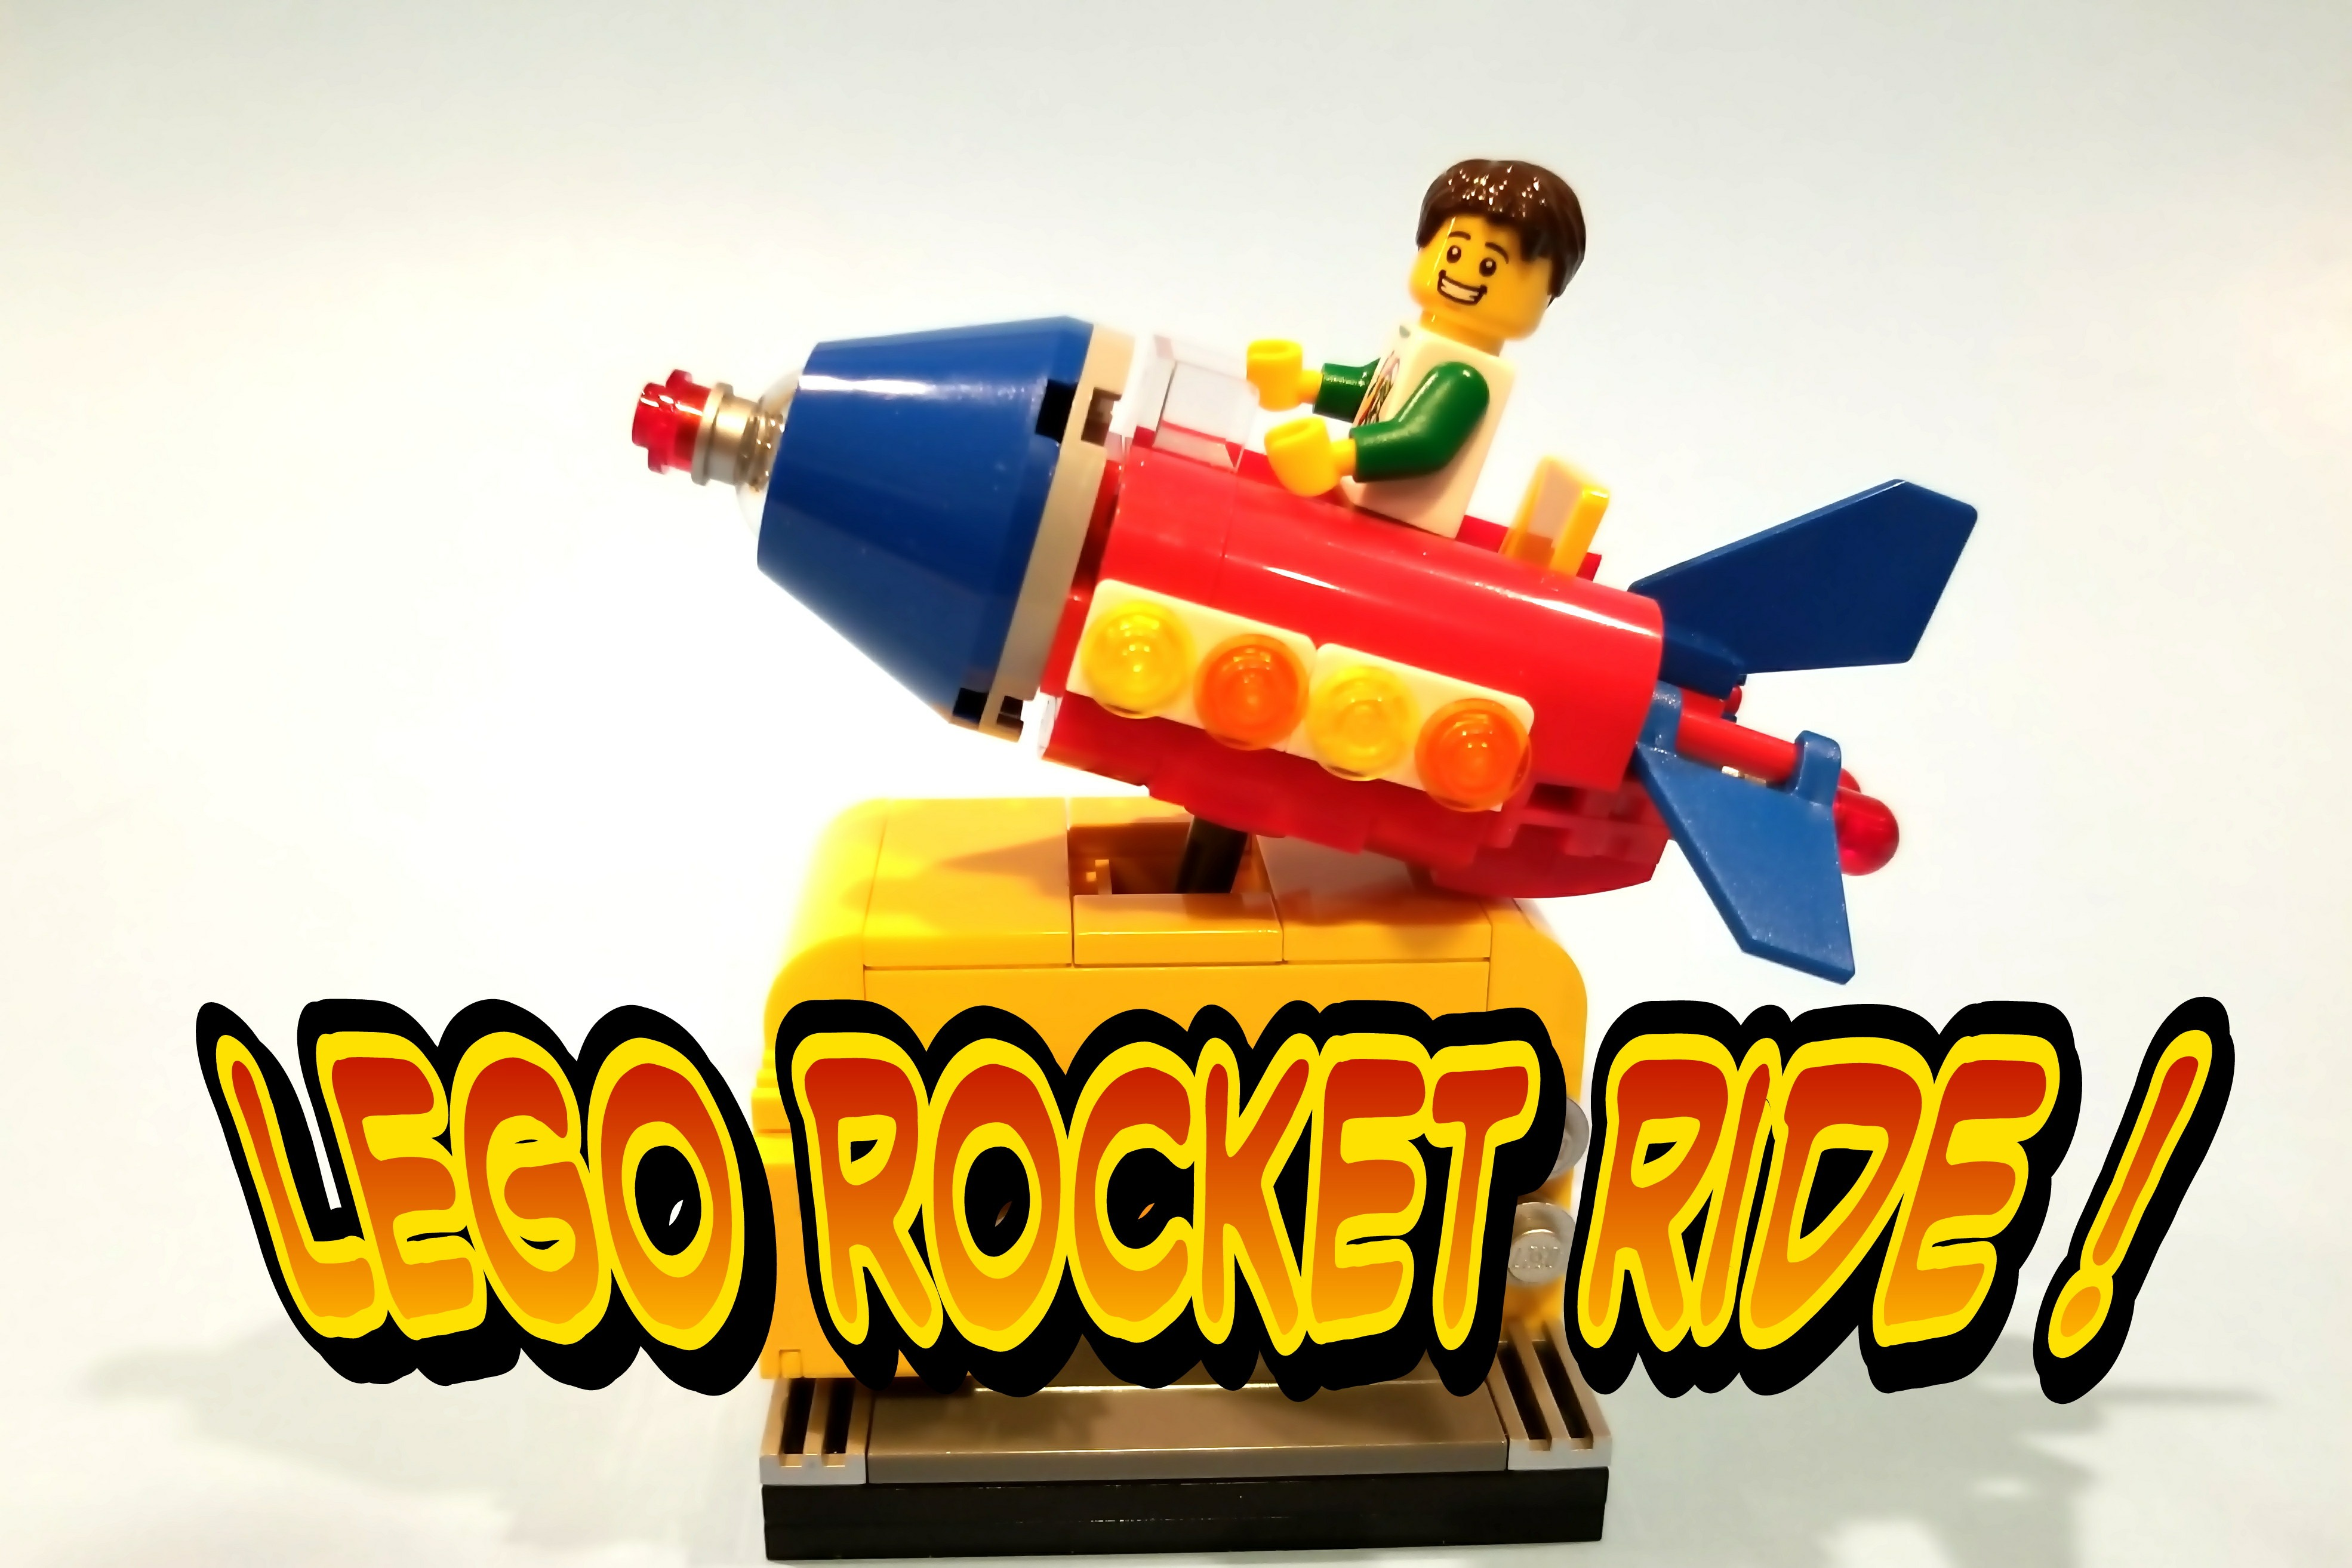 Coin Operated Rocket Ride in Lego